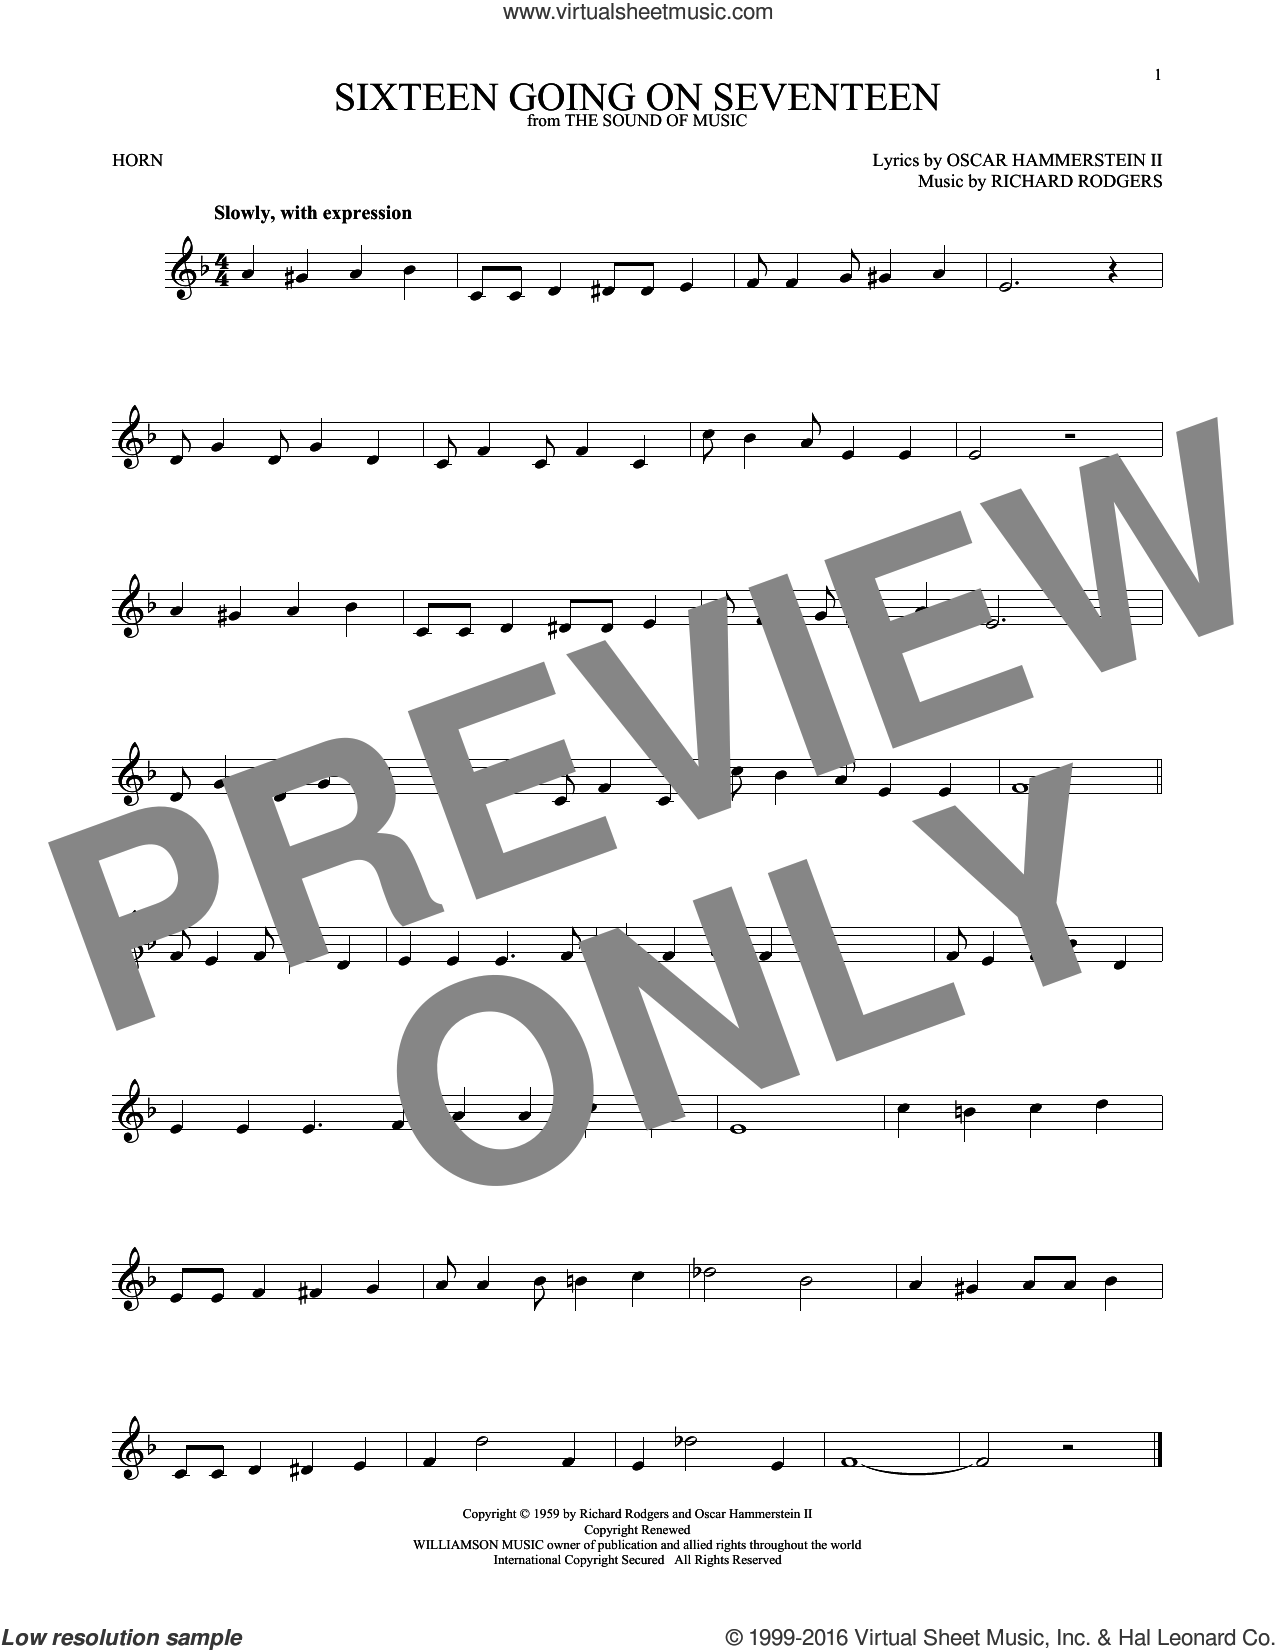 Sixteen Going On Seventeen sheet music for horn solo by Rodgers & Hammerstein, Oscar II Hammerstein and Richard Rodgers, intermediate skill level